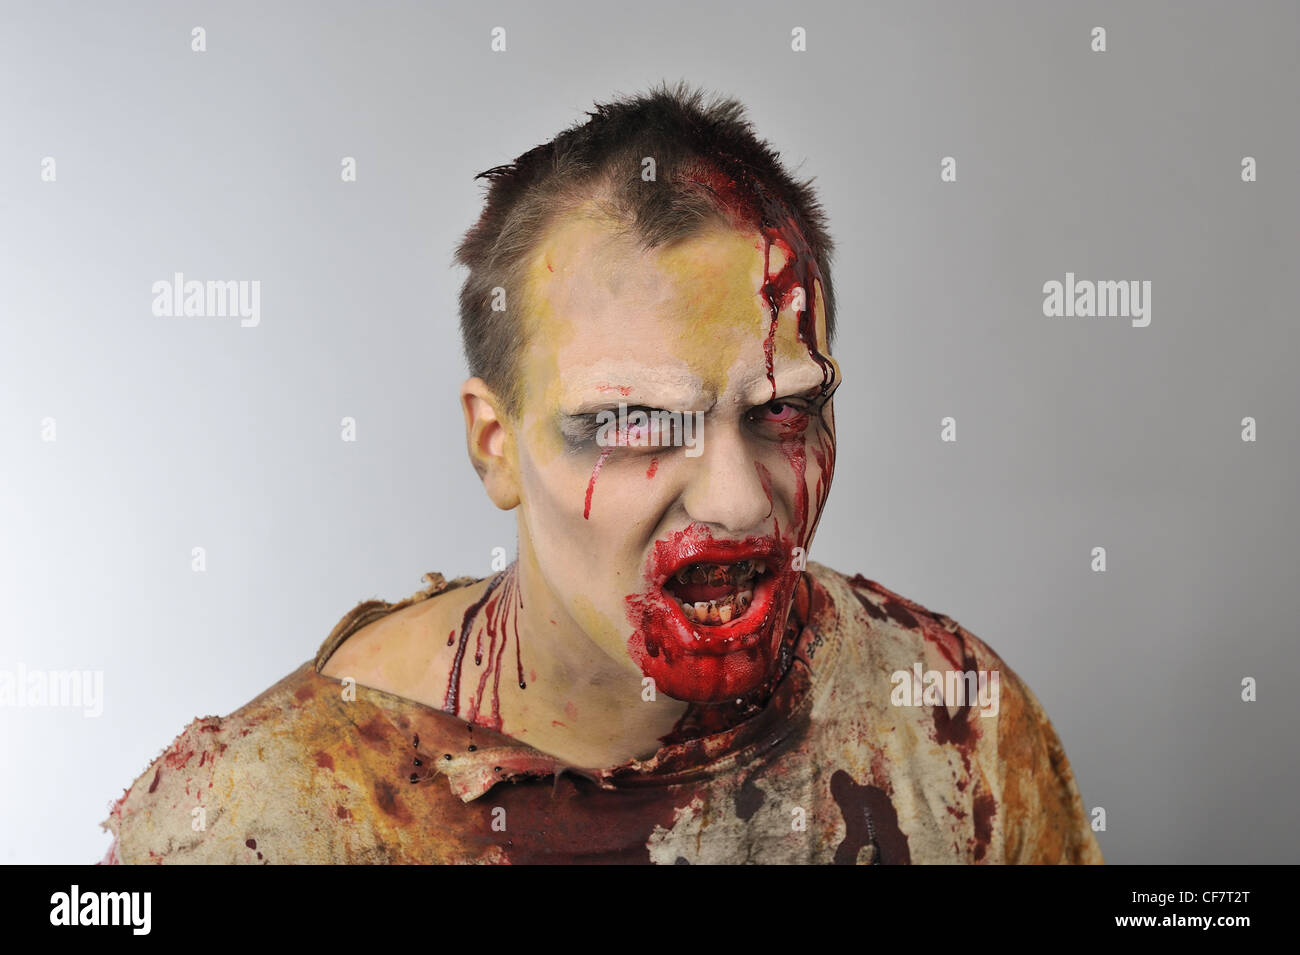 Zombie, the walking dead - Stock Image